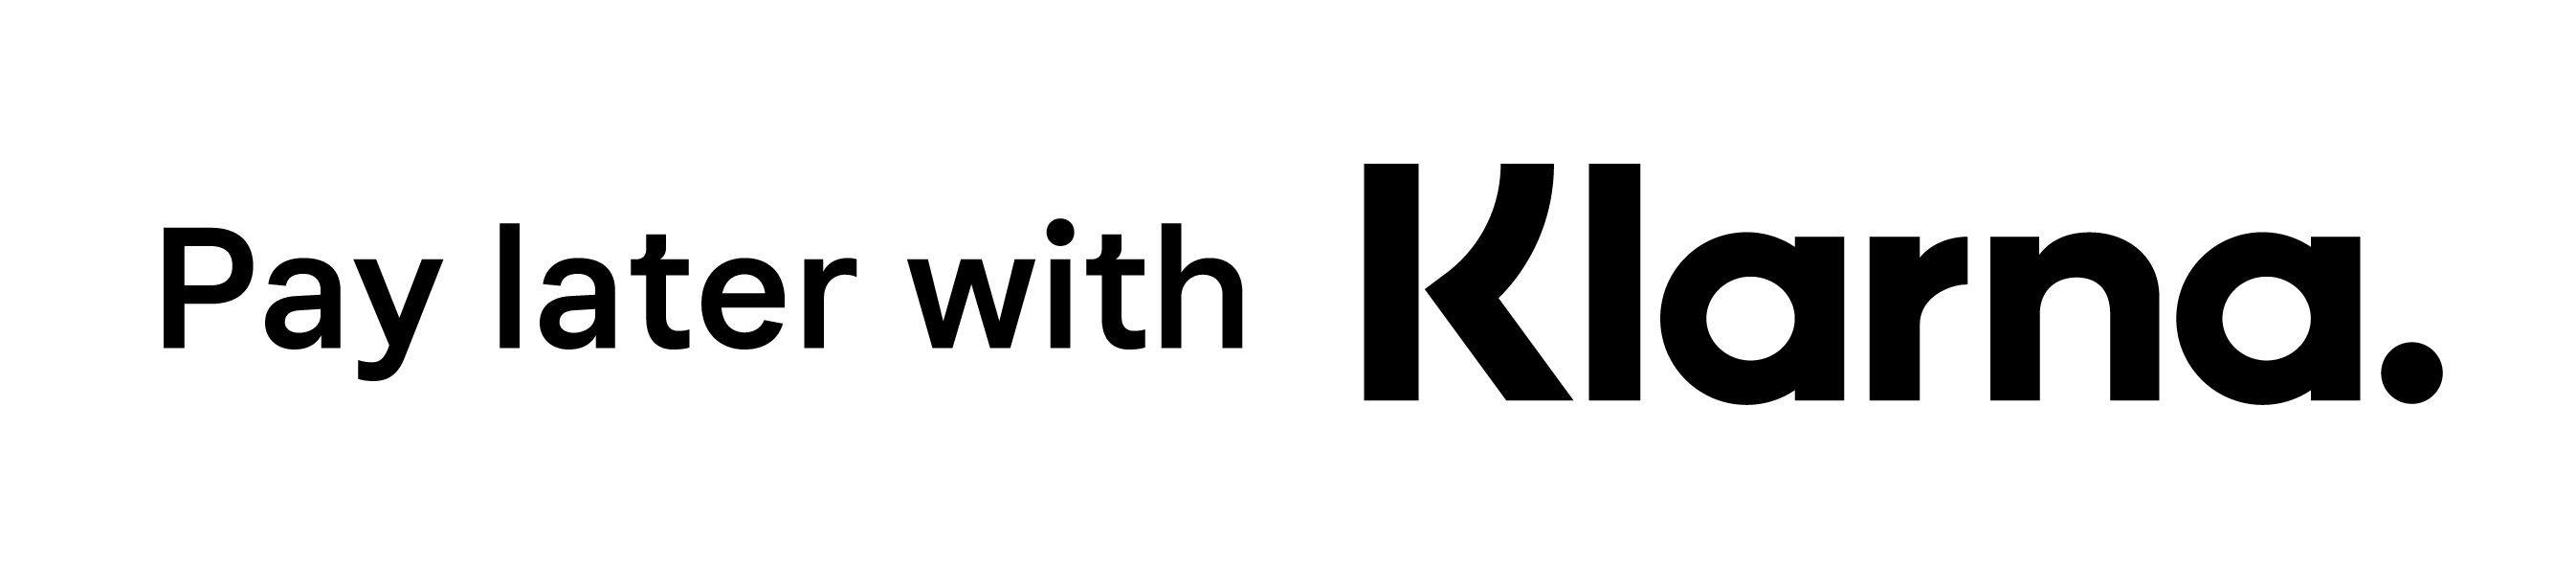 Pay later with Klarna banner